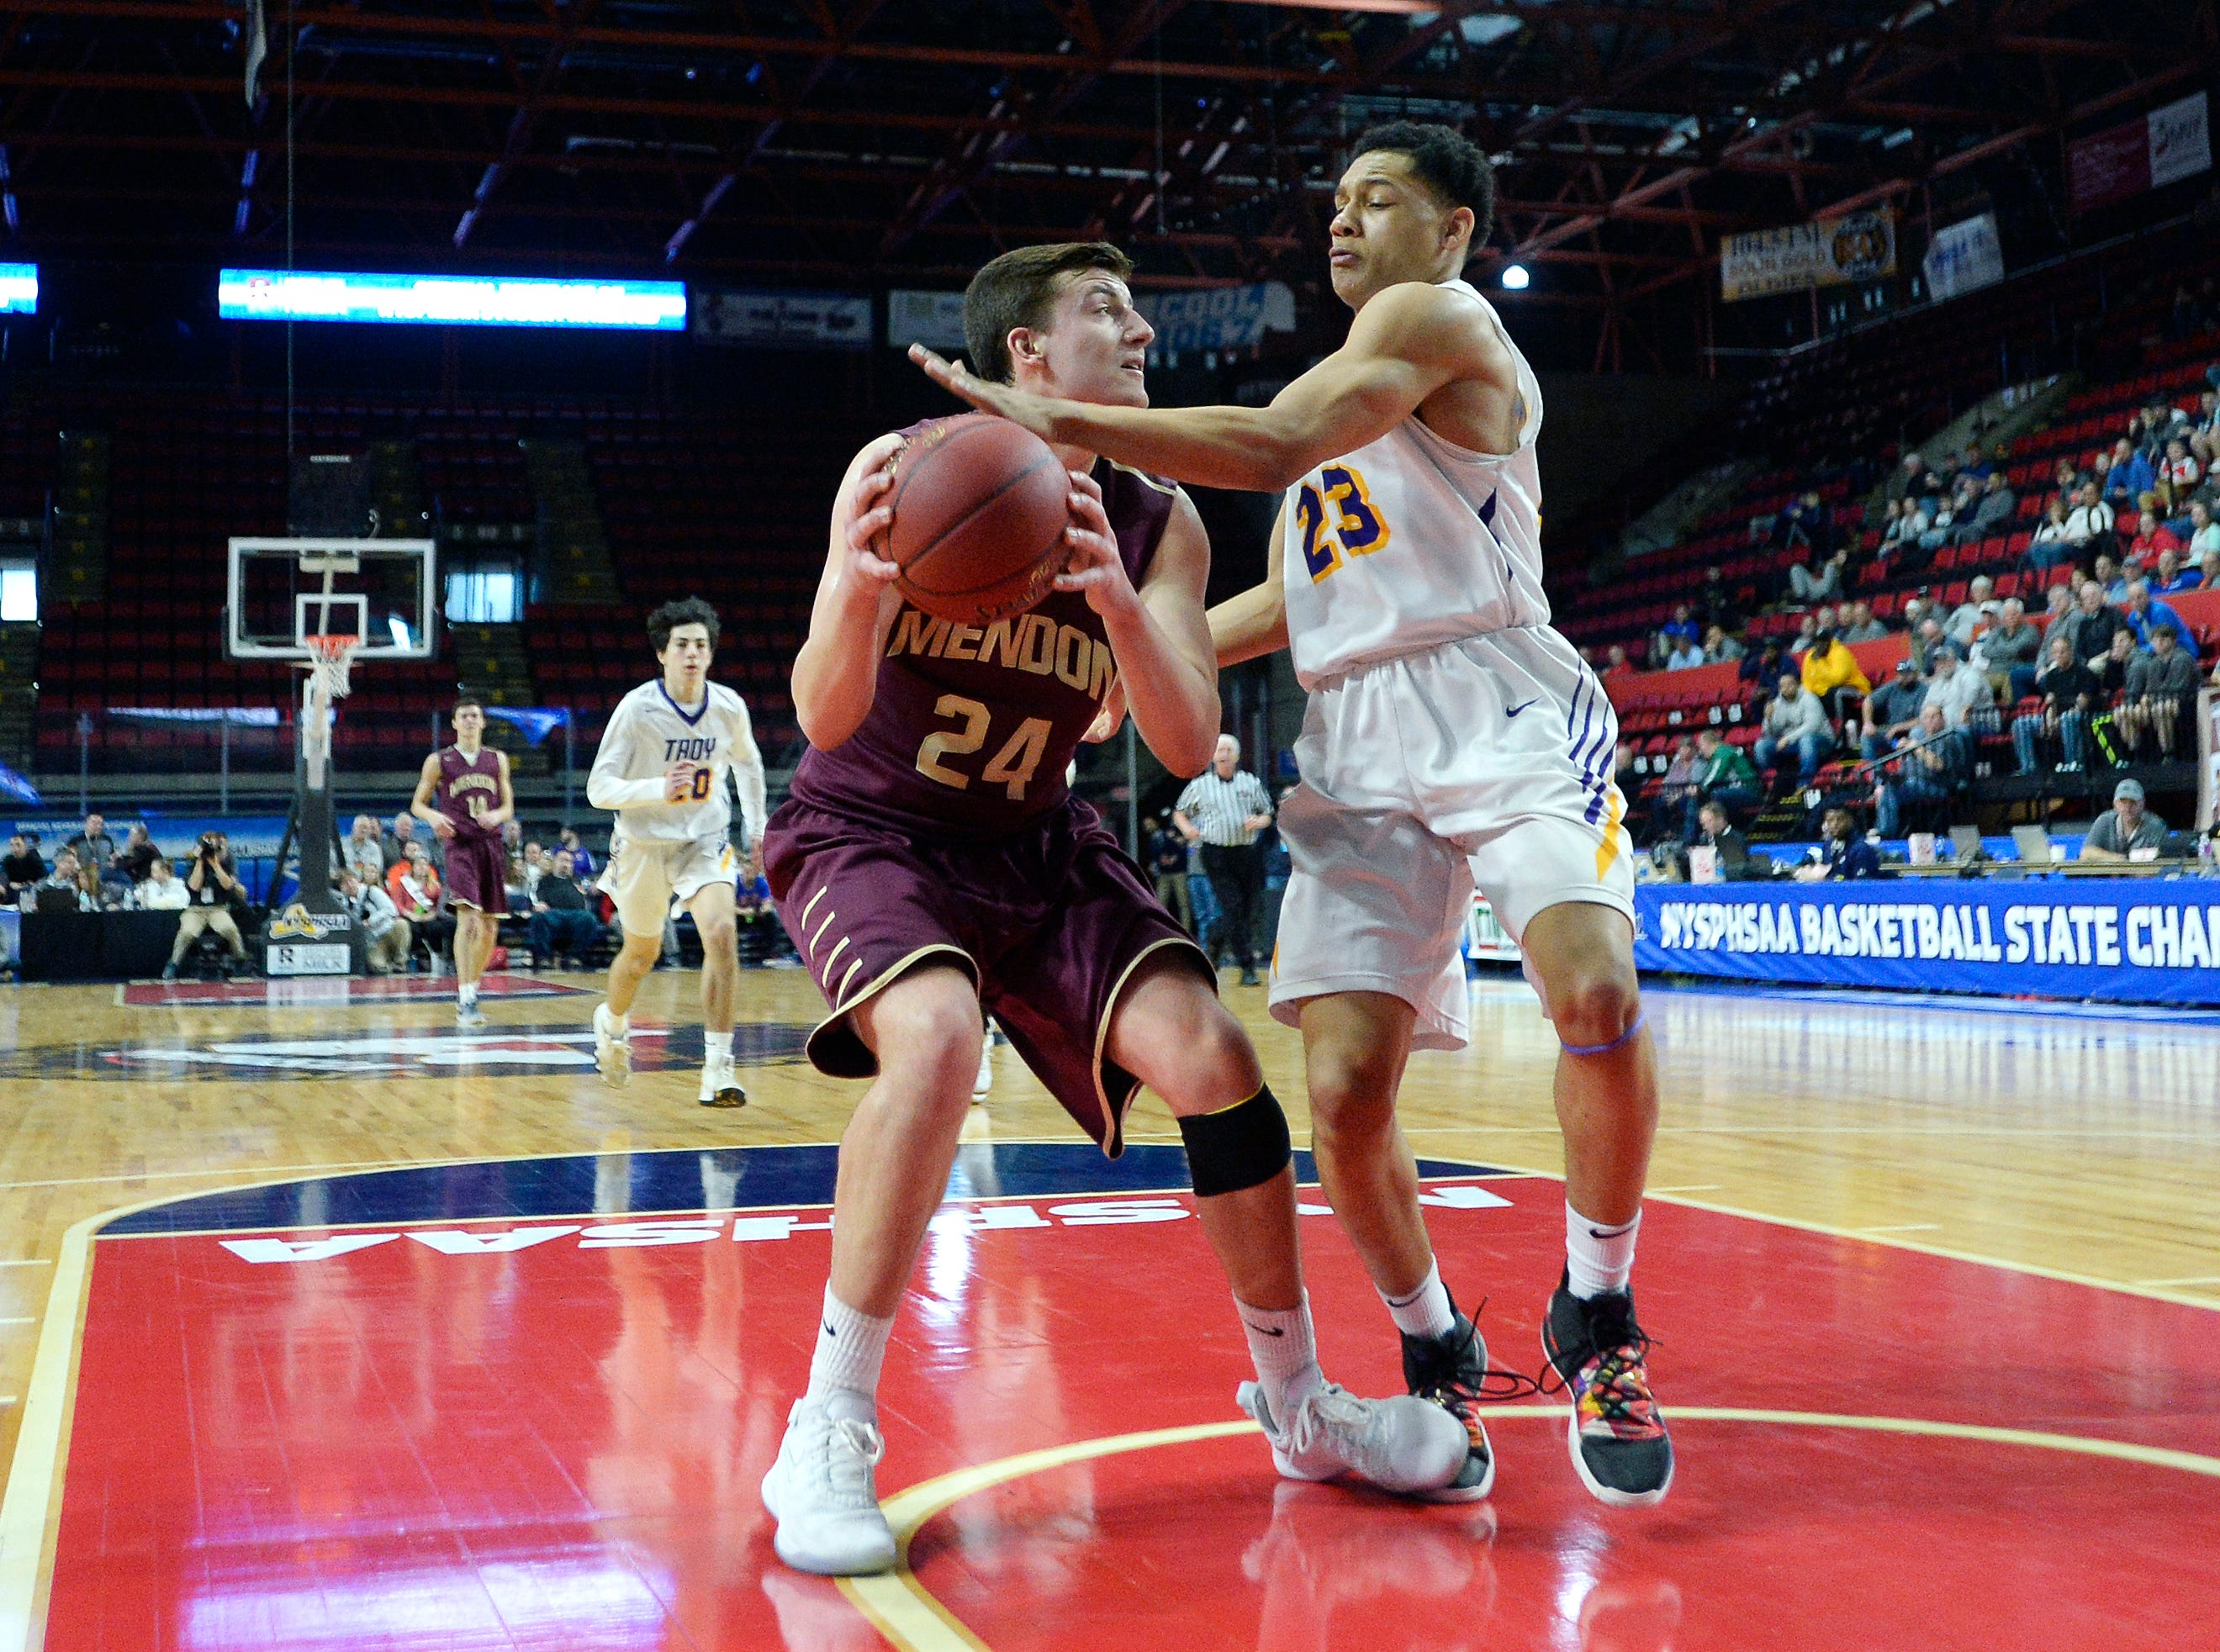 Pittsford Mendon's Nate Strauf, left, is defended by Troy's Latyce Faison during a Class A semifinal at the NYSPHSAA Boys Basketball Championships.